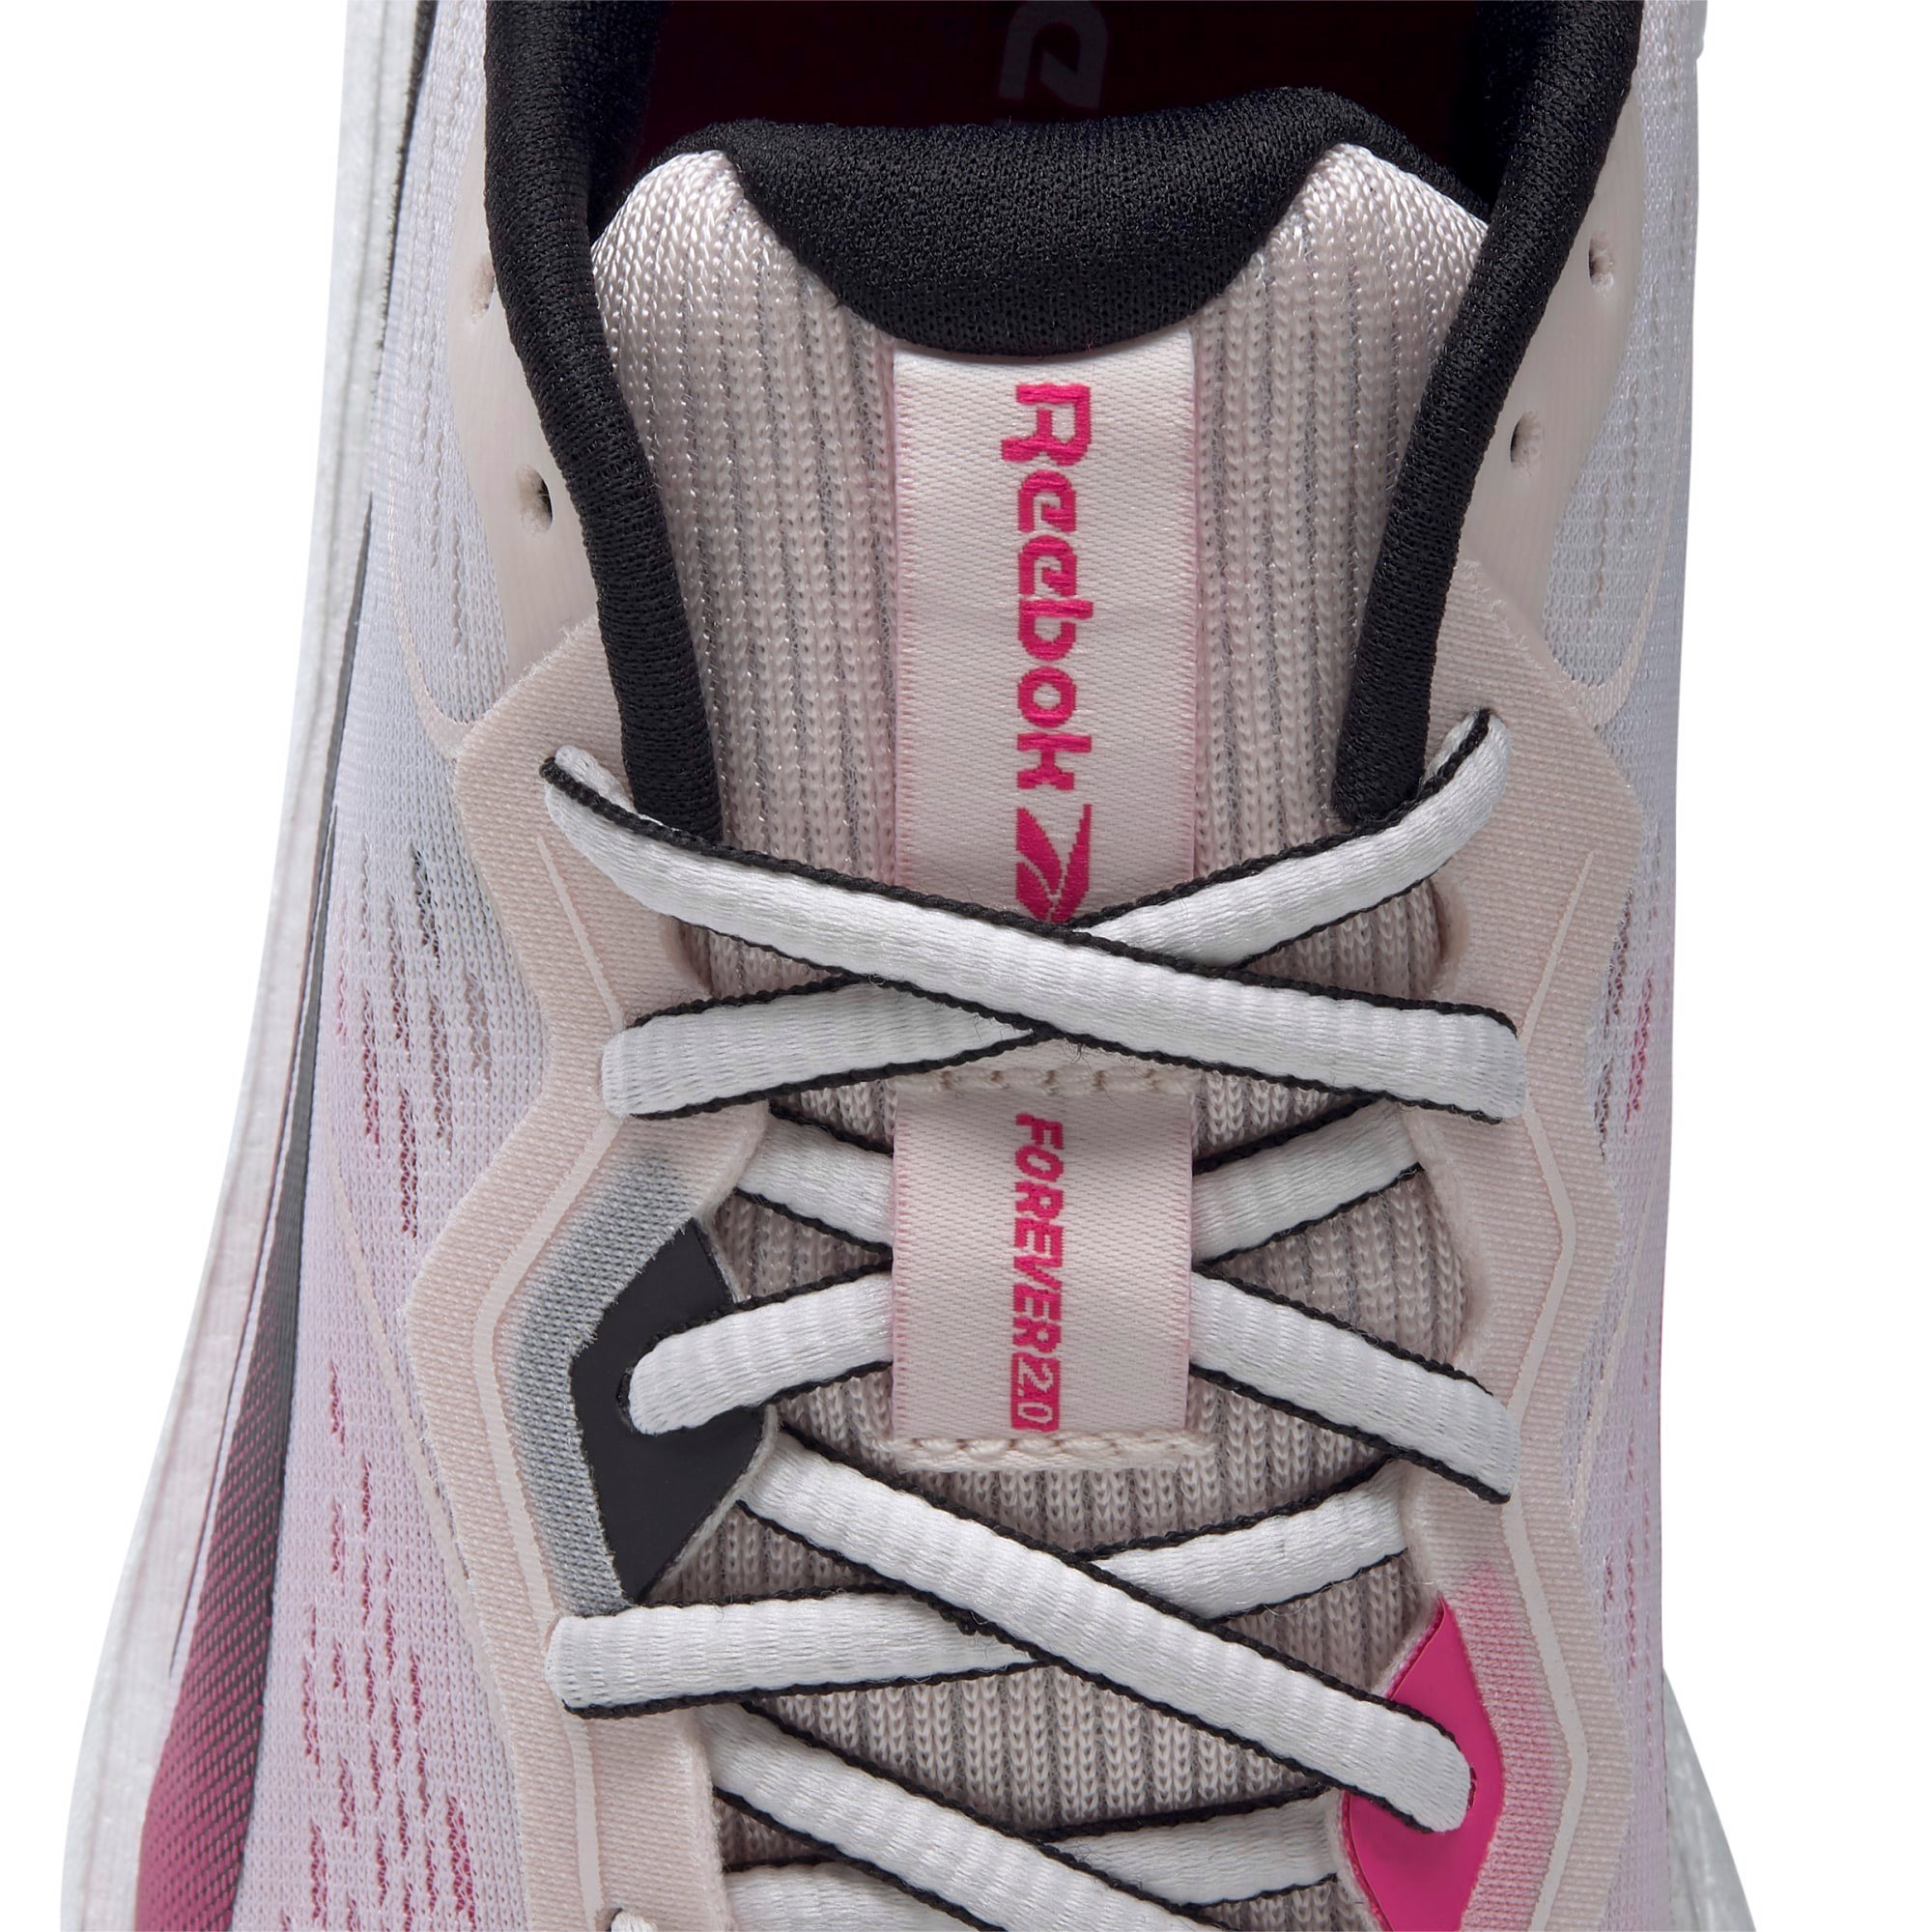 Reebok - Giày thể thao Nữ Forever Floatride Energy 2 Fitness Shoes - Low Women Running Fo-8279